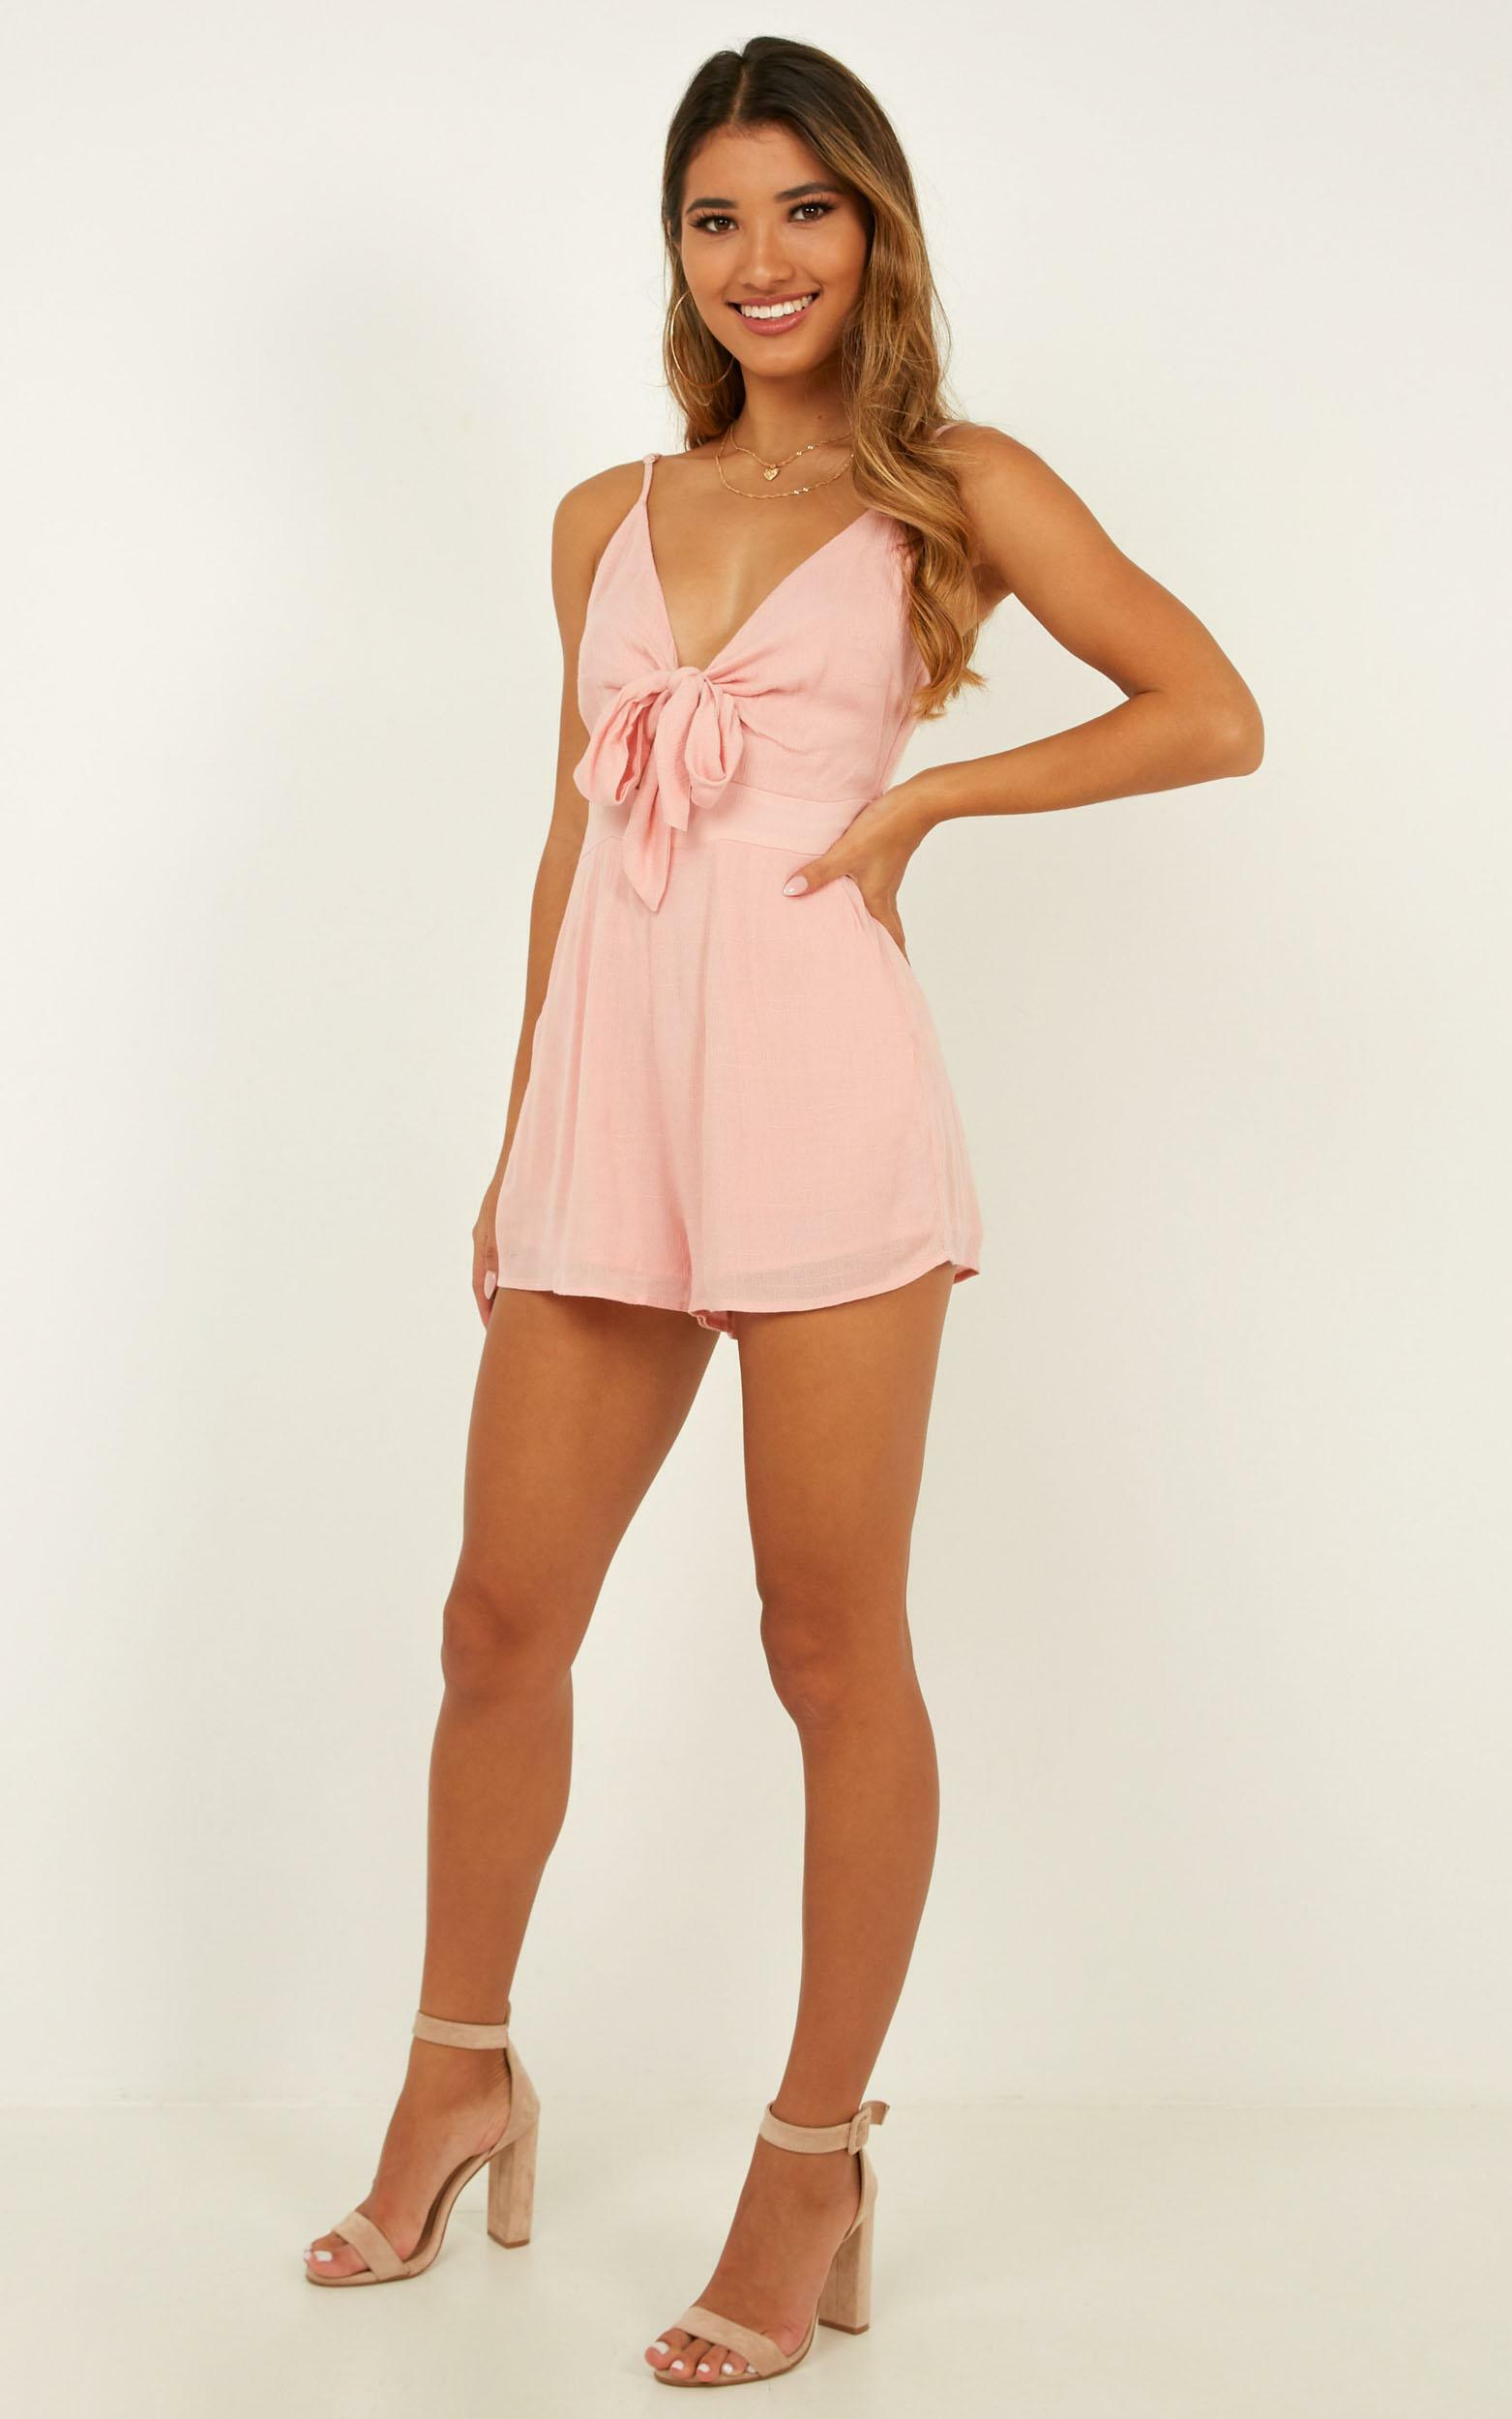 Tricky Love Playsuit in blush - 18 (XXXL), Blush, hi-res image number null